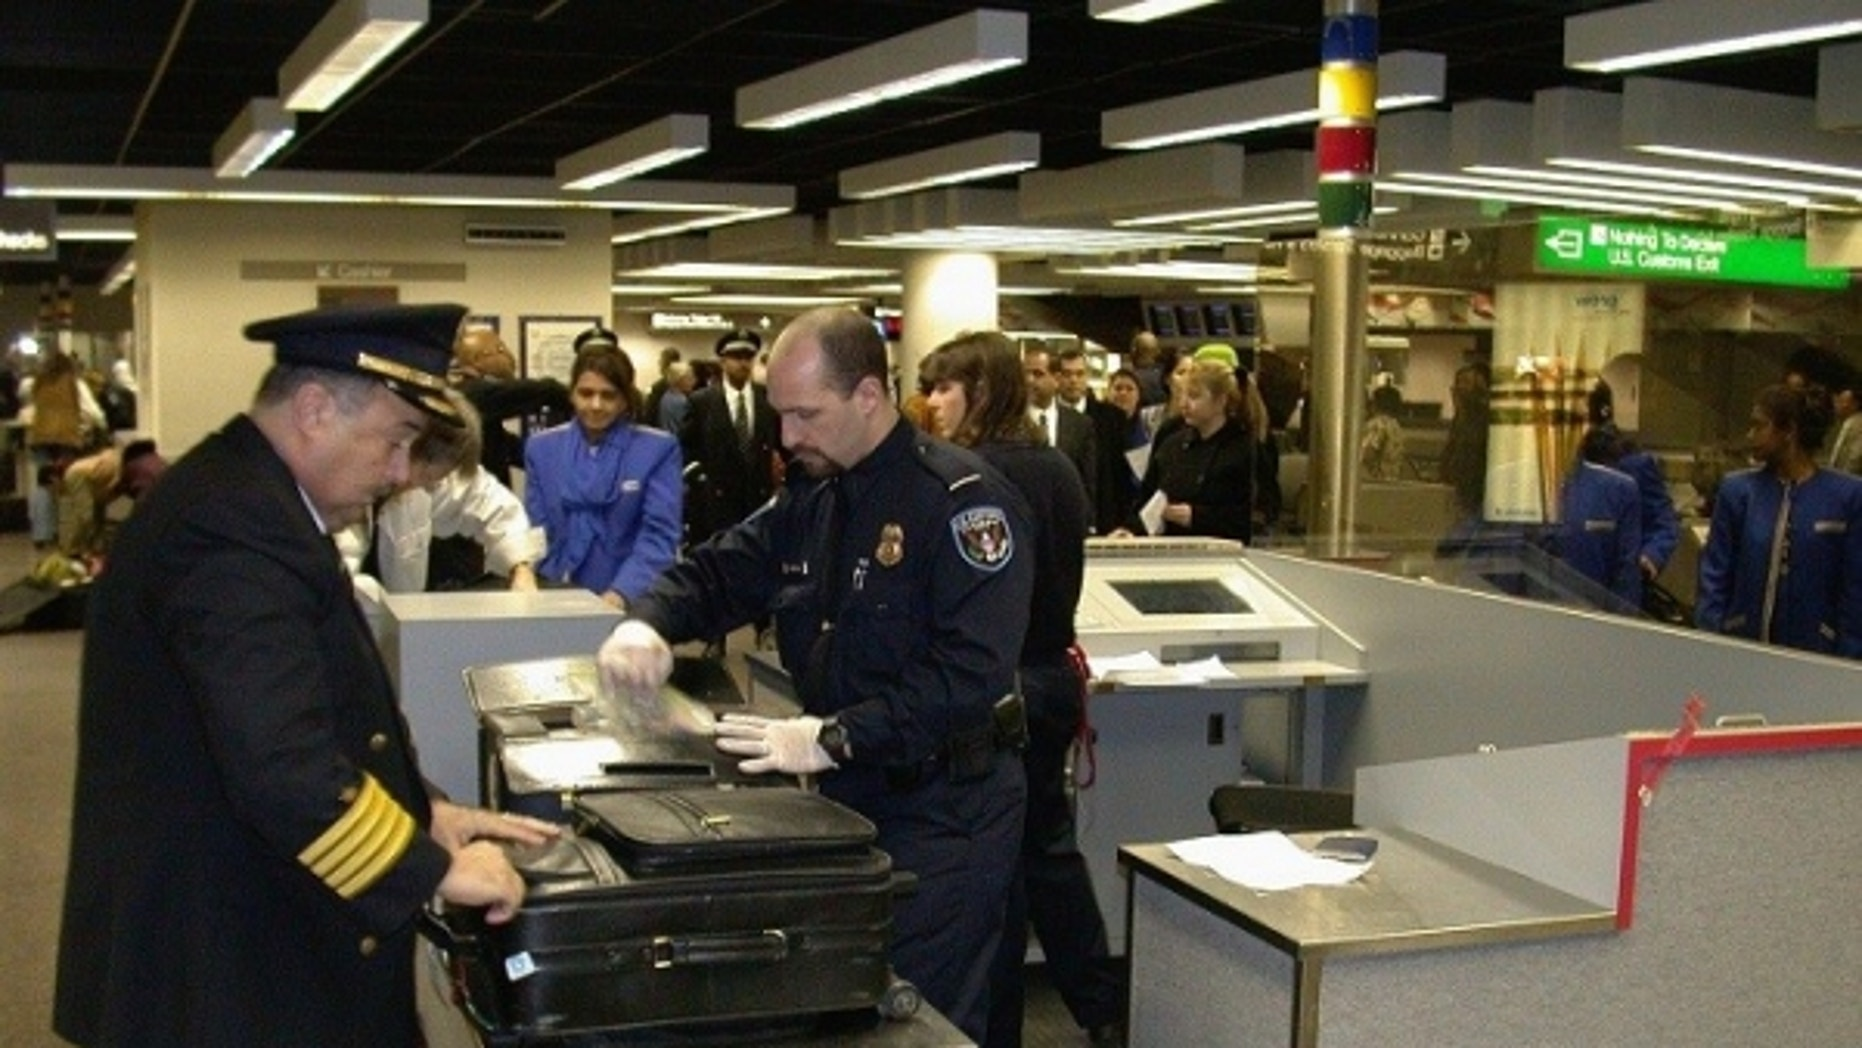 Customs agents inspect airline passenger bags at New York's John F. Kennedy Airport.